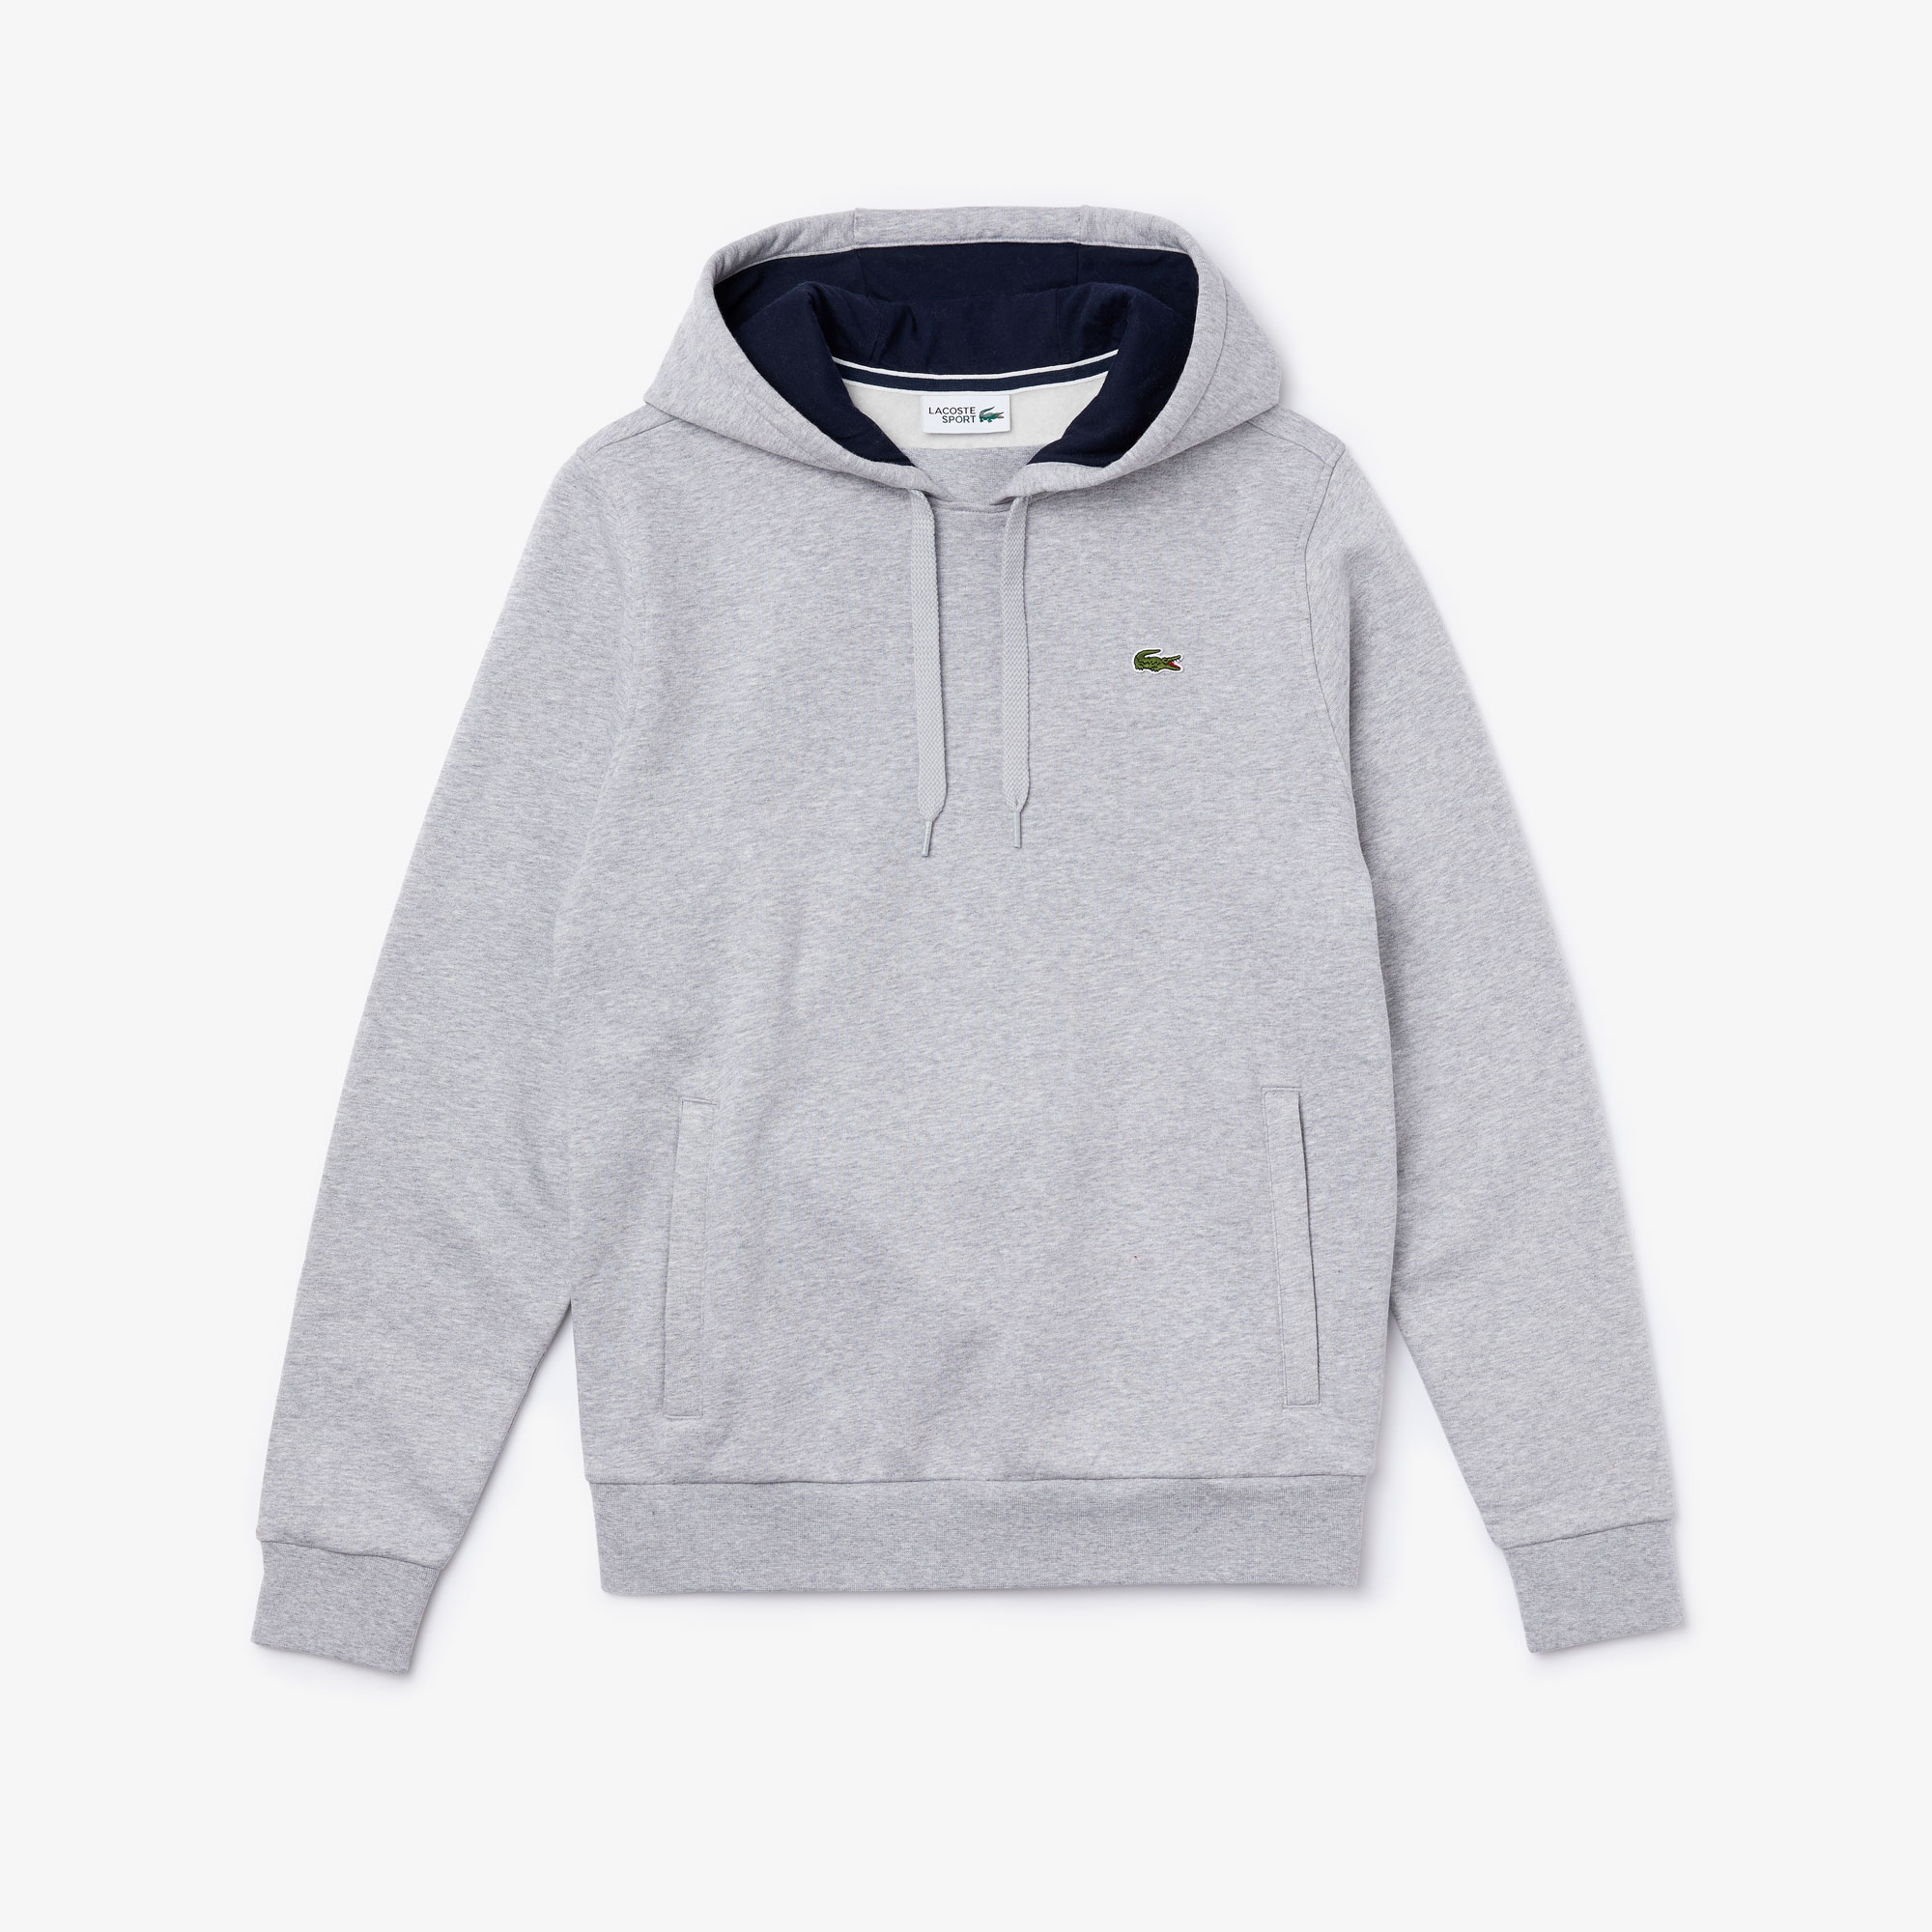 Men's Lacoste Sport Hooded Fleece Tennis Sweatshirt